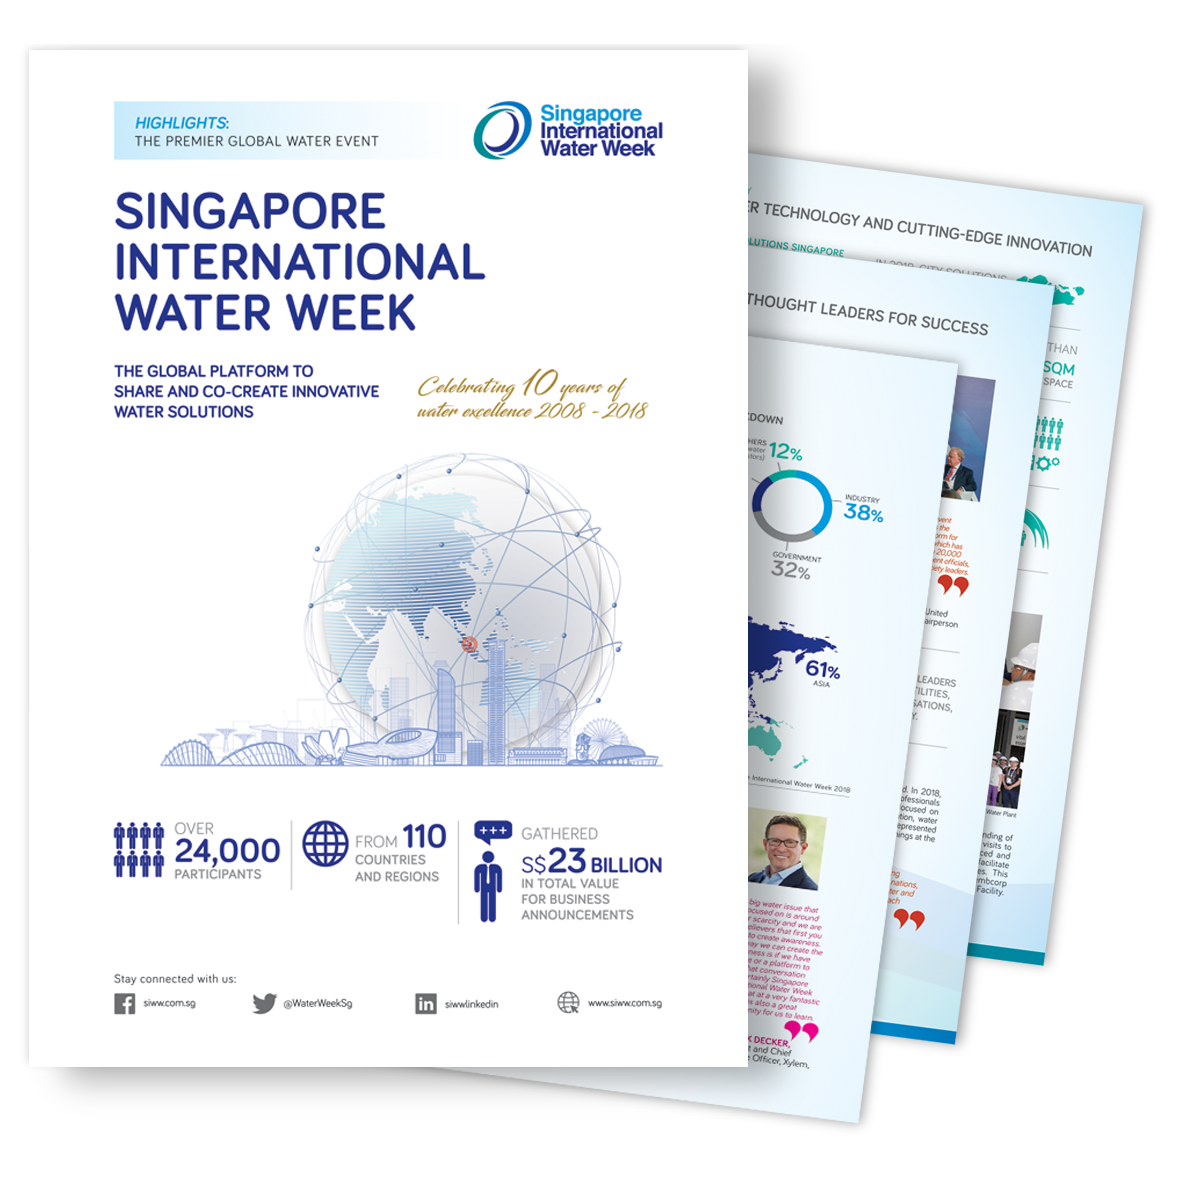 SIWW 2018 Event Highlights Brochure